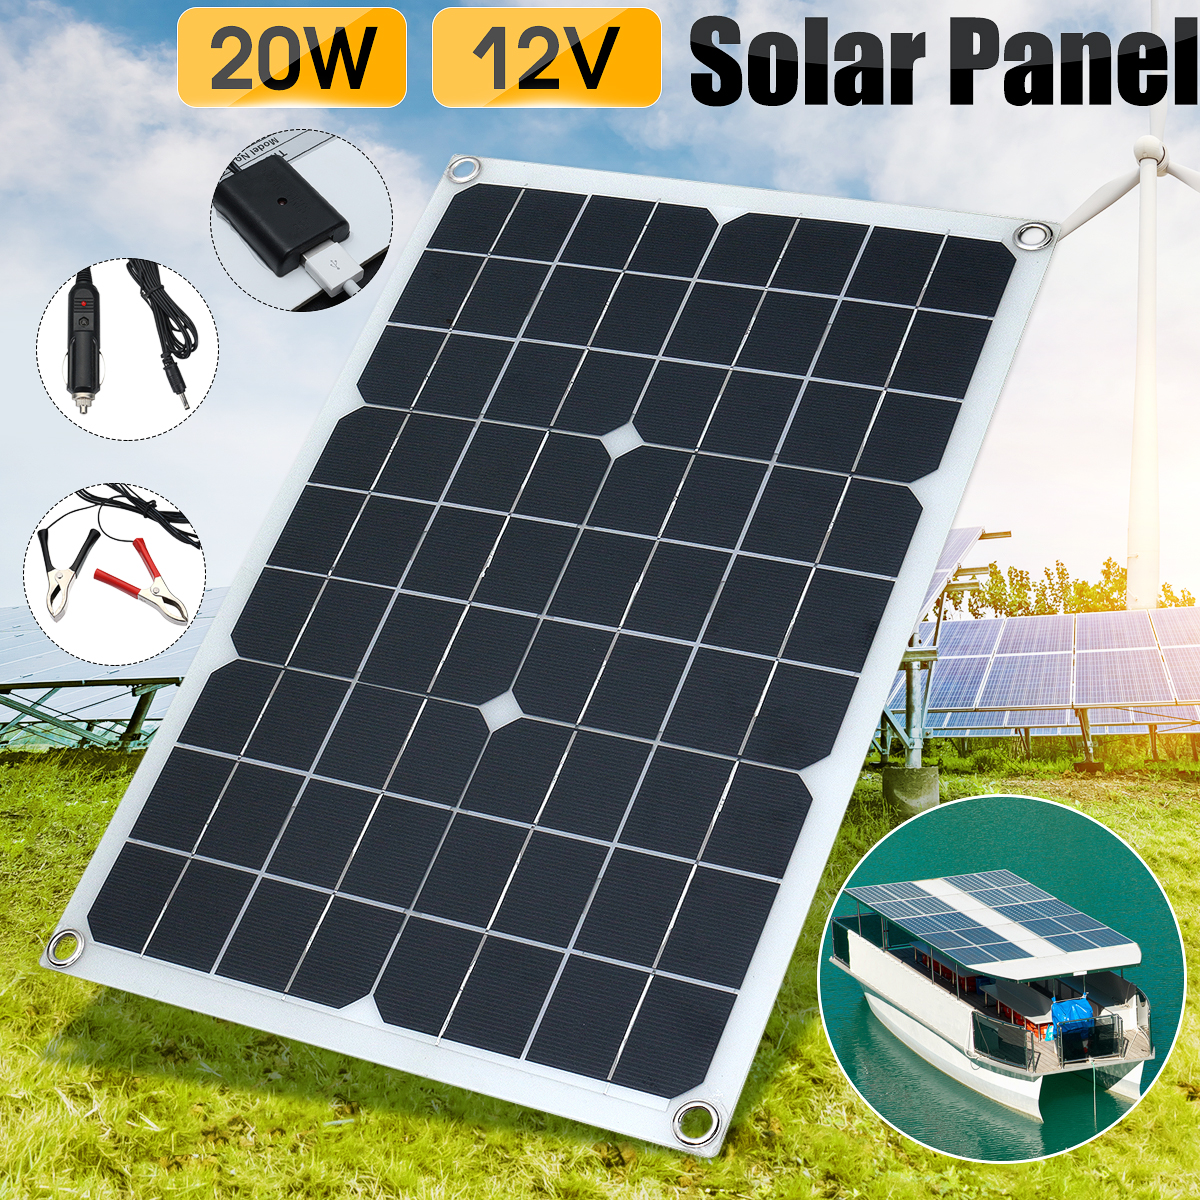 20W 12V/5V Waterproof Solar Panel Kit USB Car Charger Emergency Light Camping With Cable Crocodile Clip Solar Energy Batterry diy 5v 2a voltage regulator junction box solar panel charger special kit